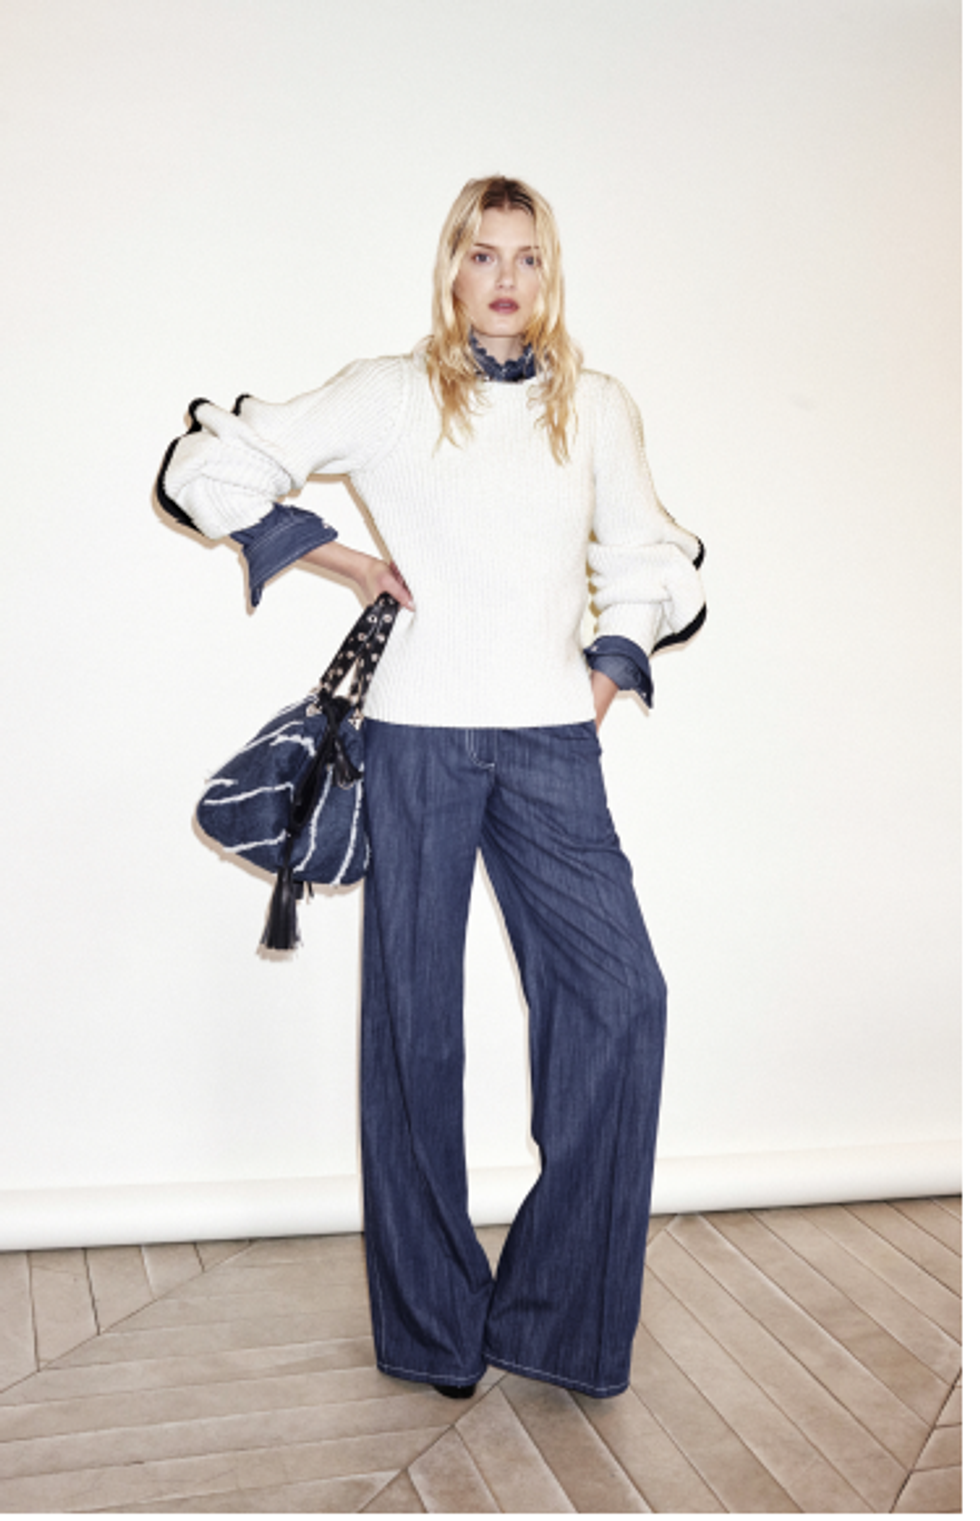 Sonia Rykiel Is Officially the Brand of Choice for Cool Women Worldwide